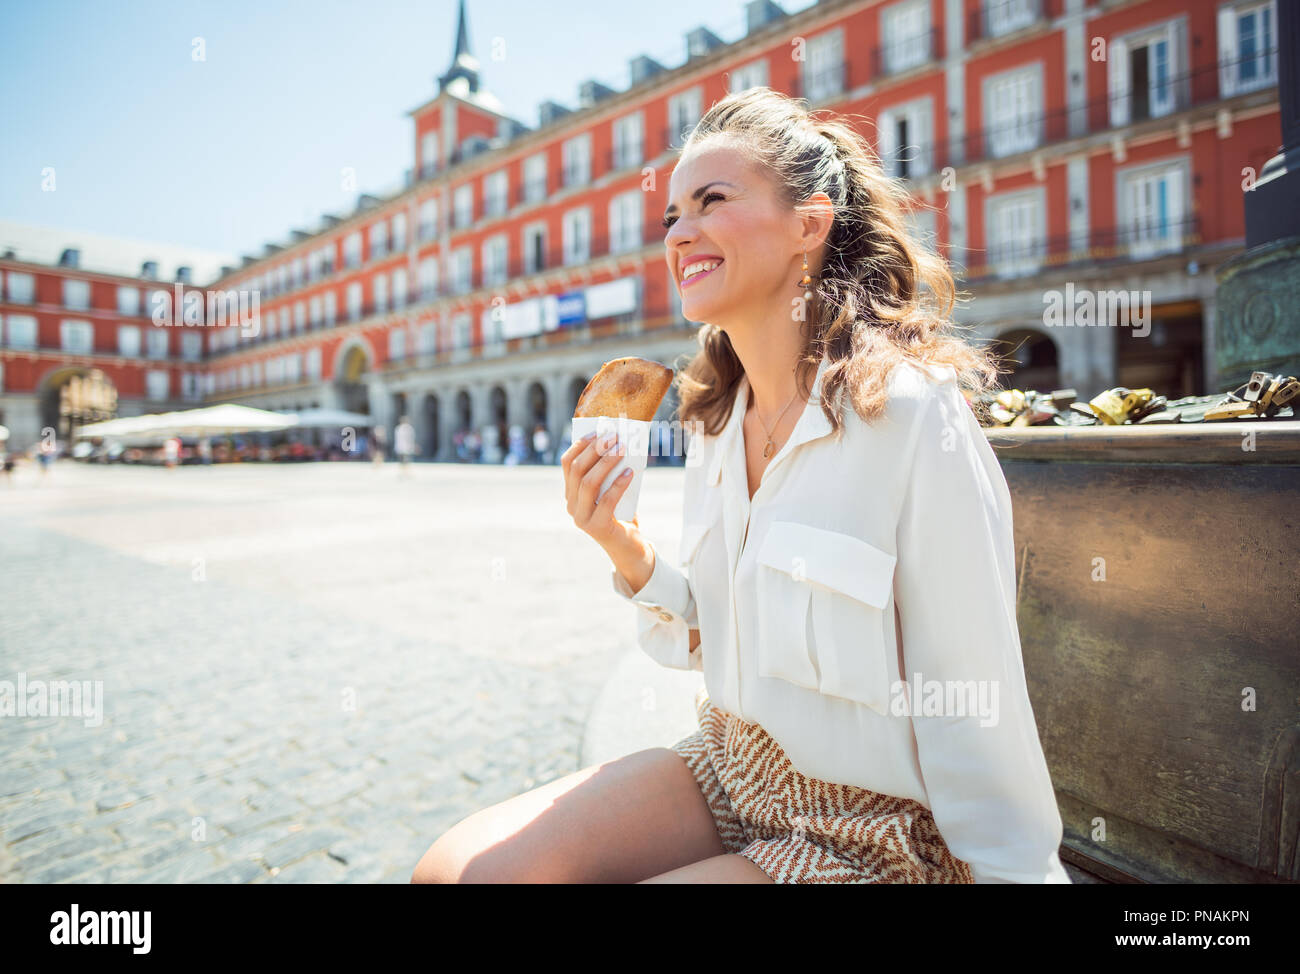 happy young traveller woman with Empanada looking into the distance at Plaza Mayor - Stock Image